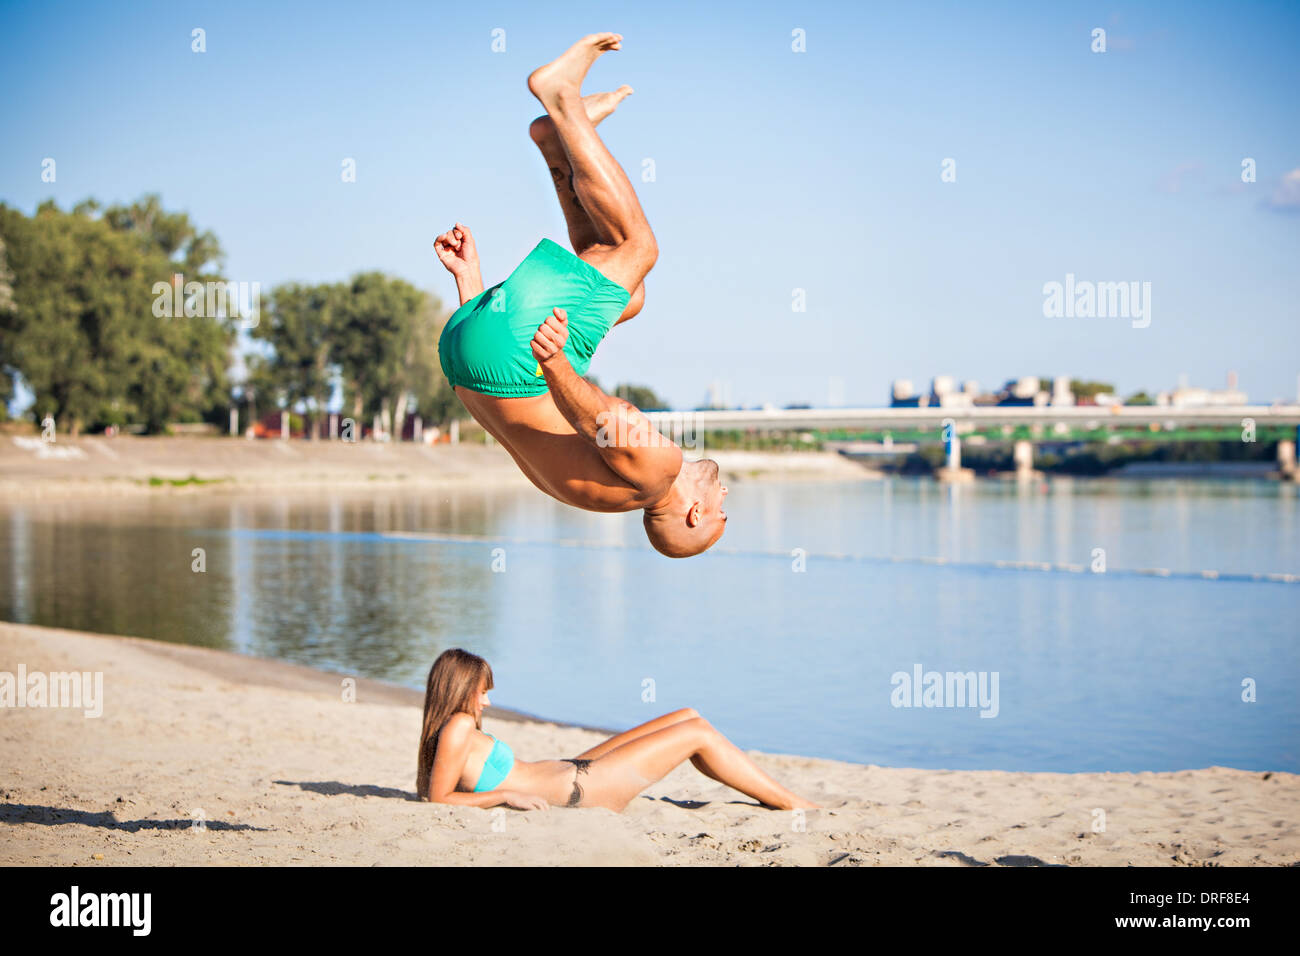 Young man somersaulting on the beach, Drava river, Osijek, Croatia Stock Photo